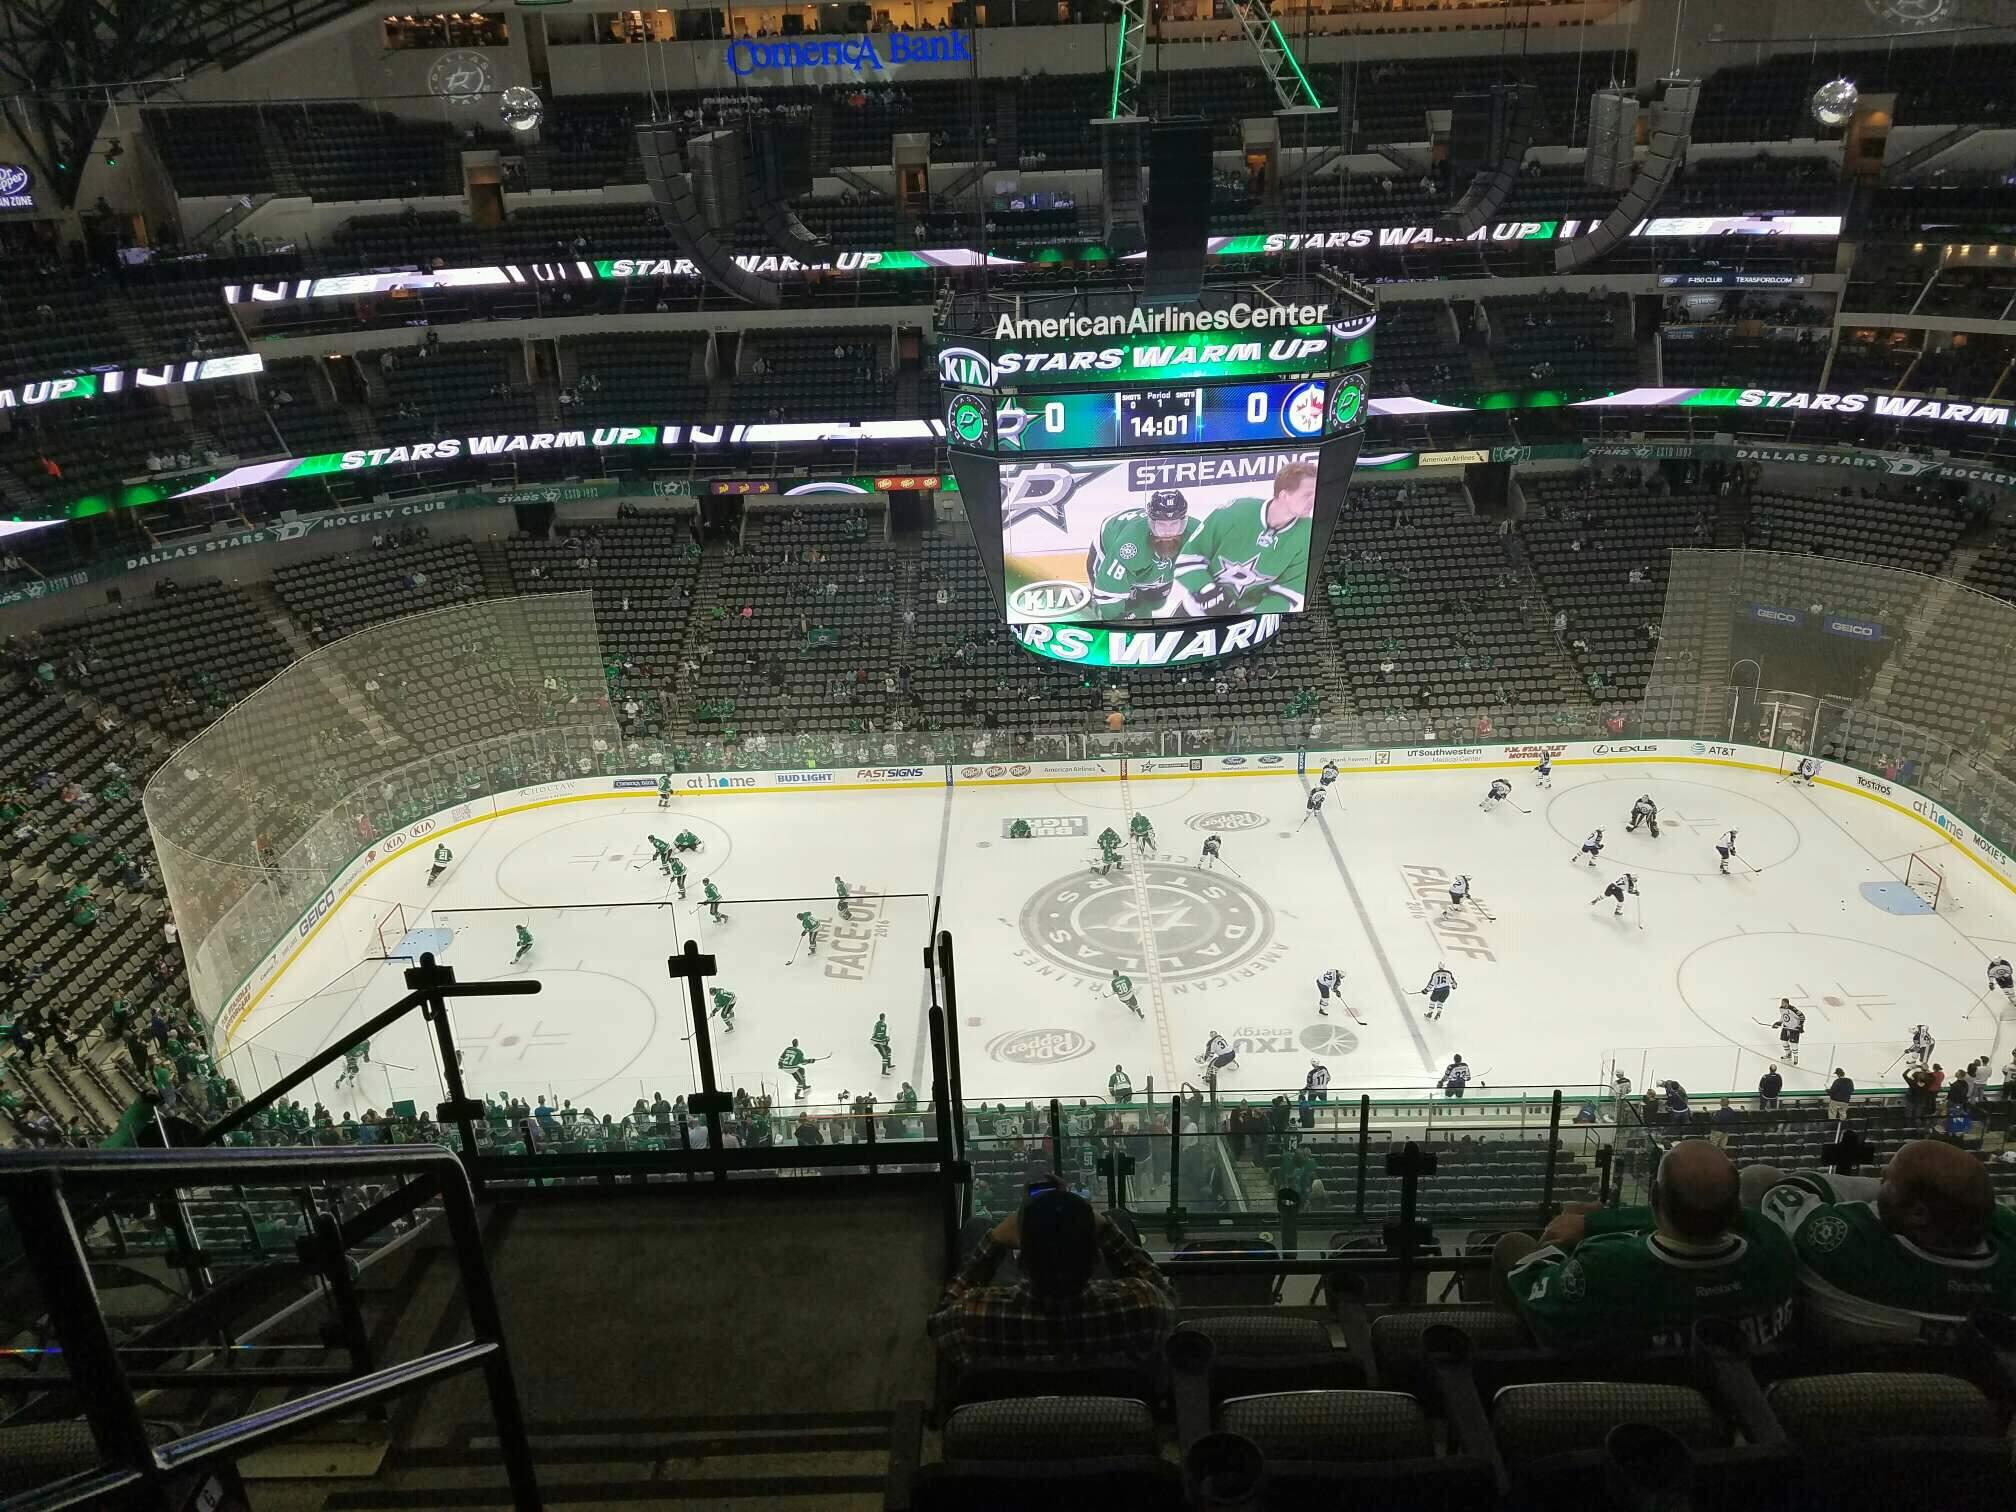 American Airlines Center Section 326 Row k Seat 15